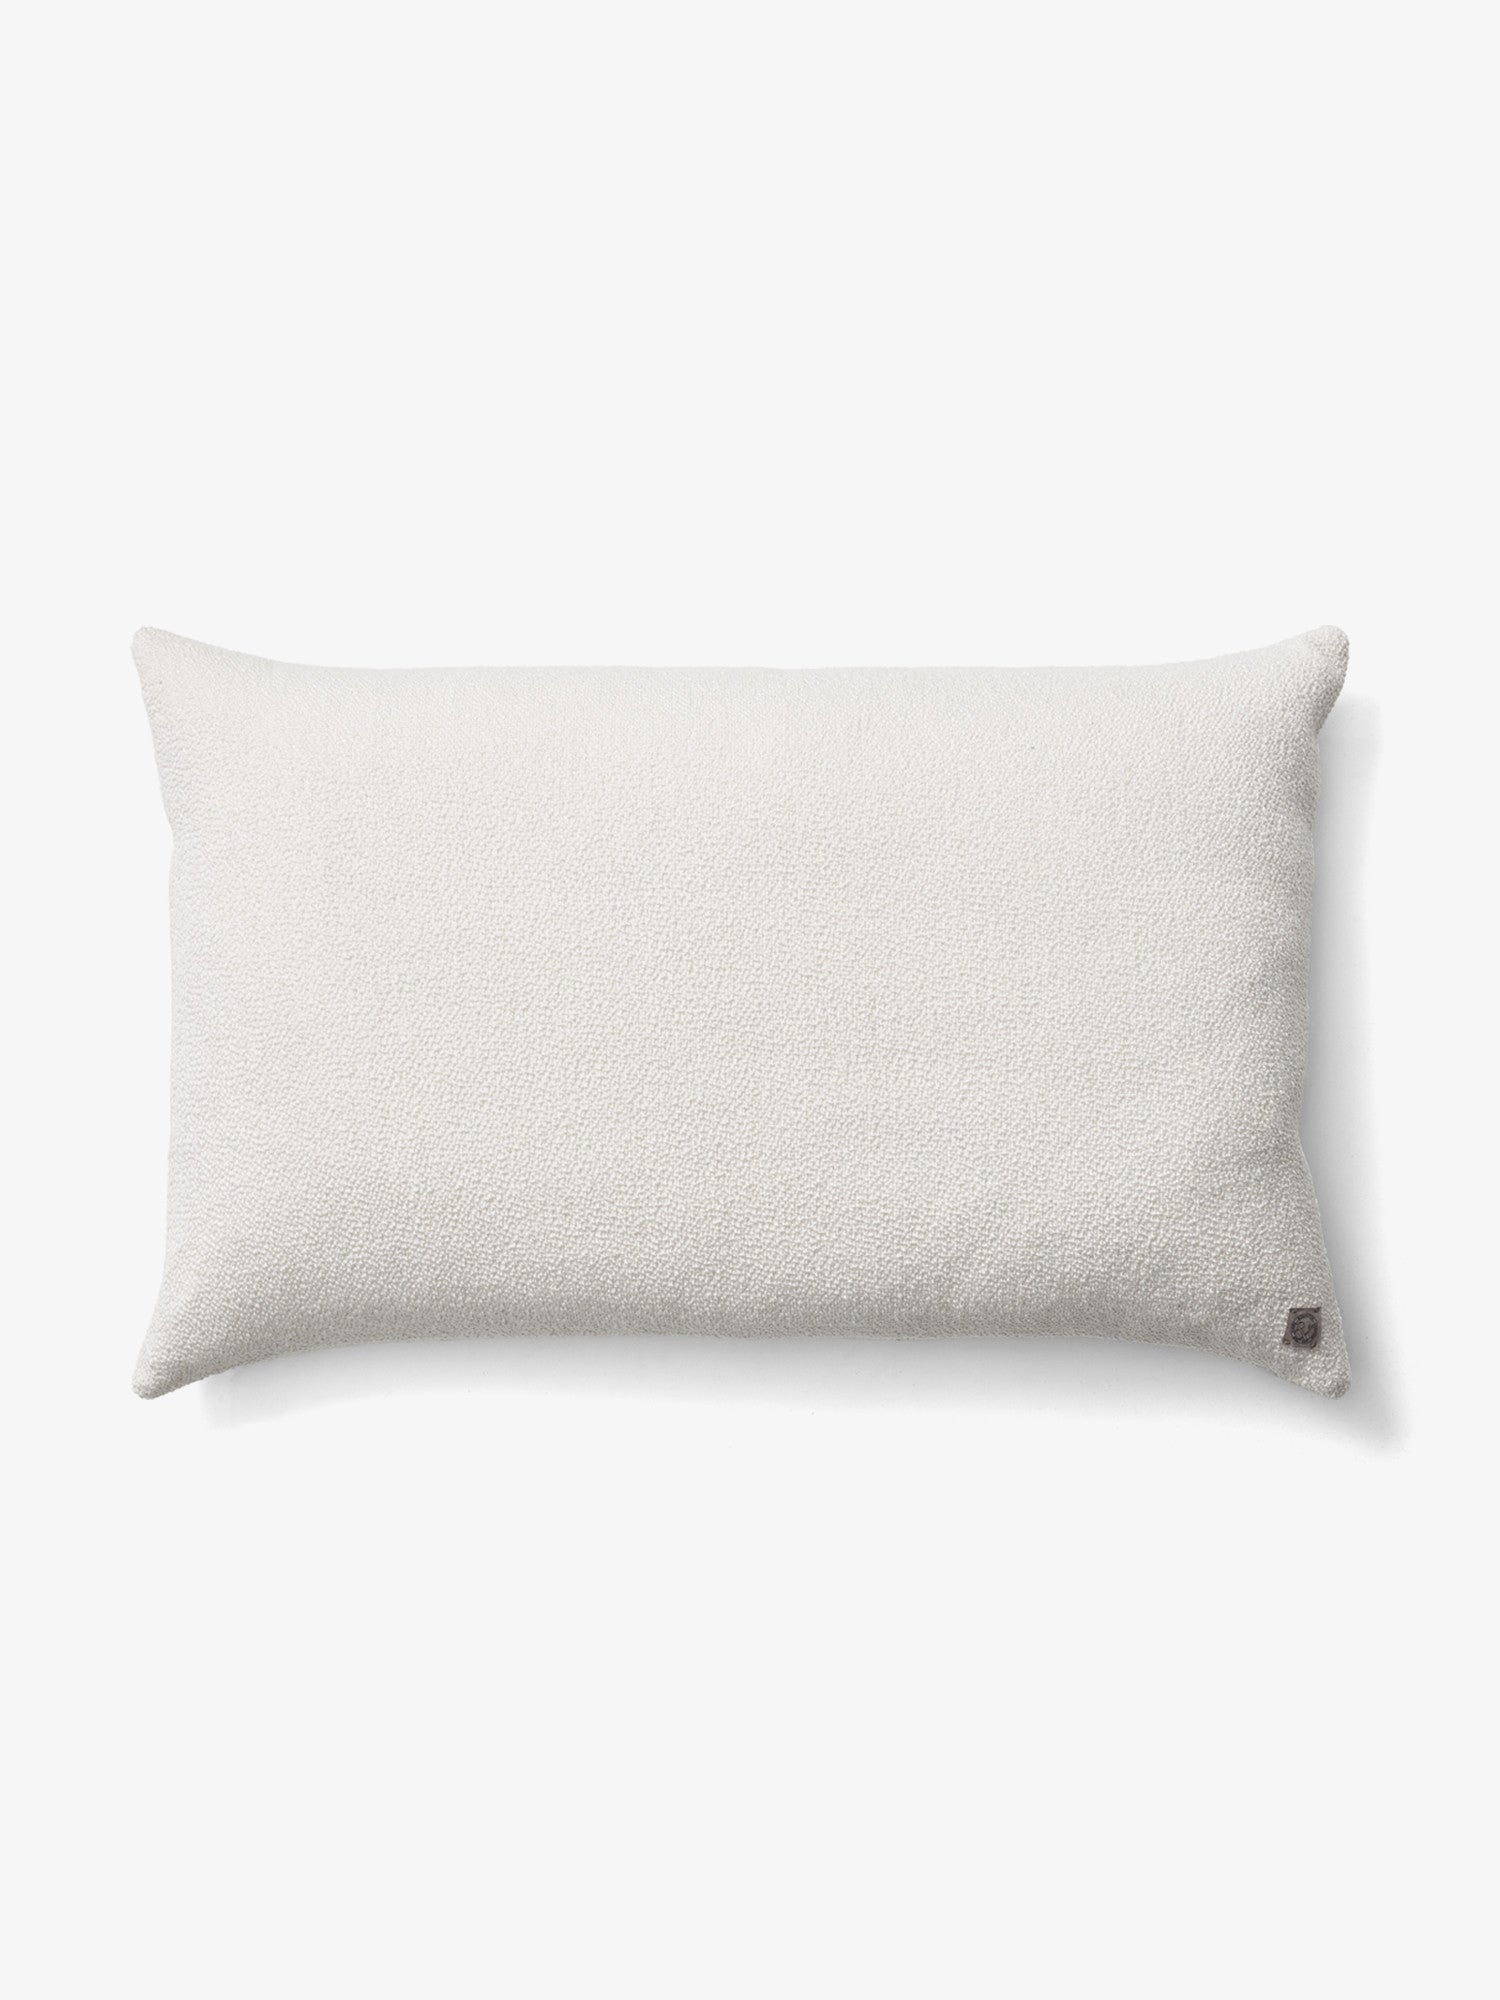 Collect Pillow 50x80cm - Boucle